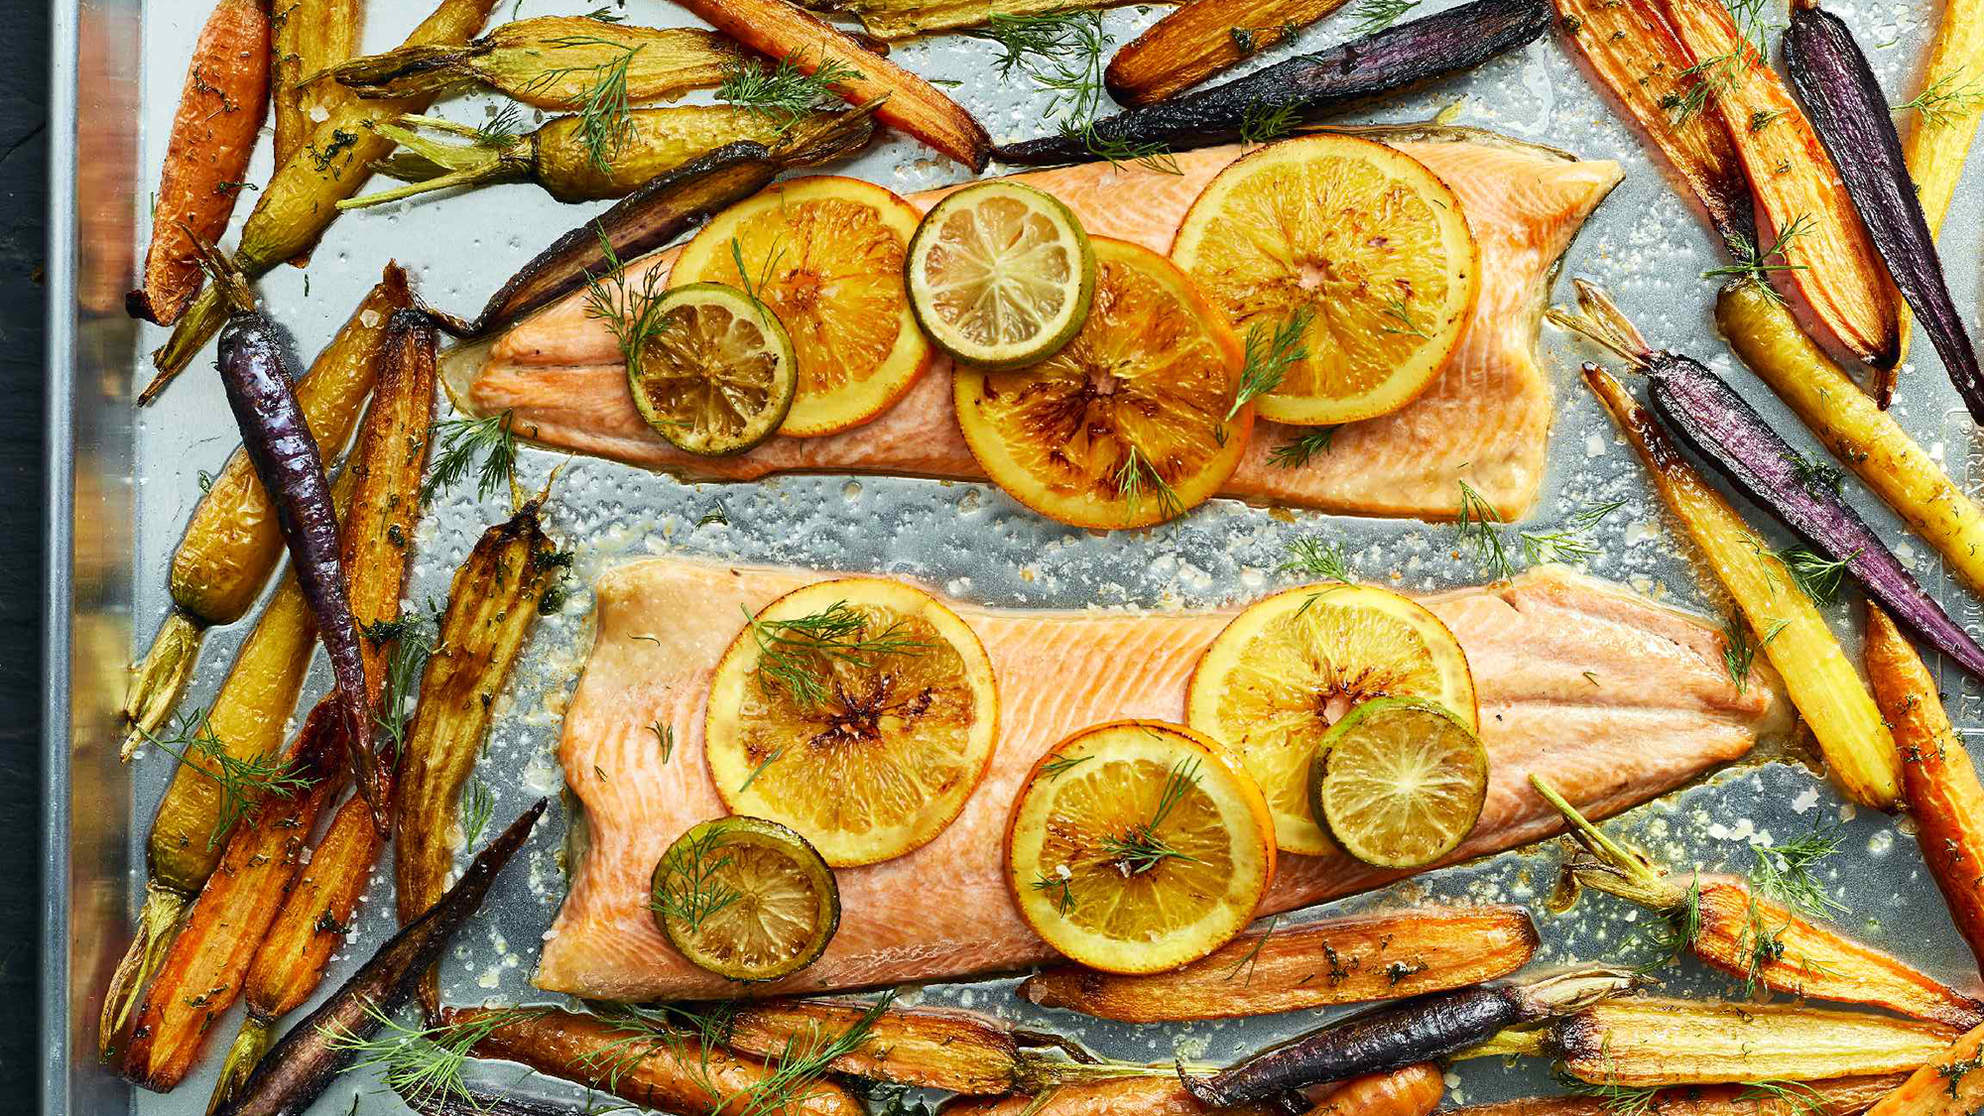 roasted-arctic-char-carrots-citrus-health-mag-may-2020